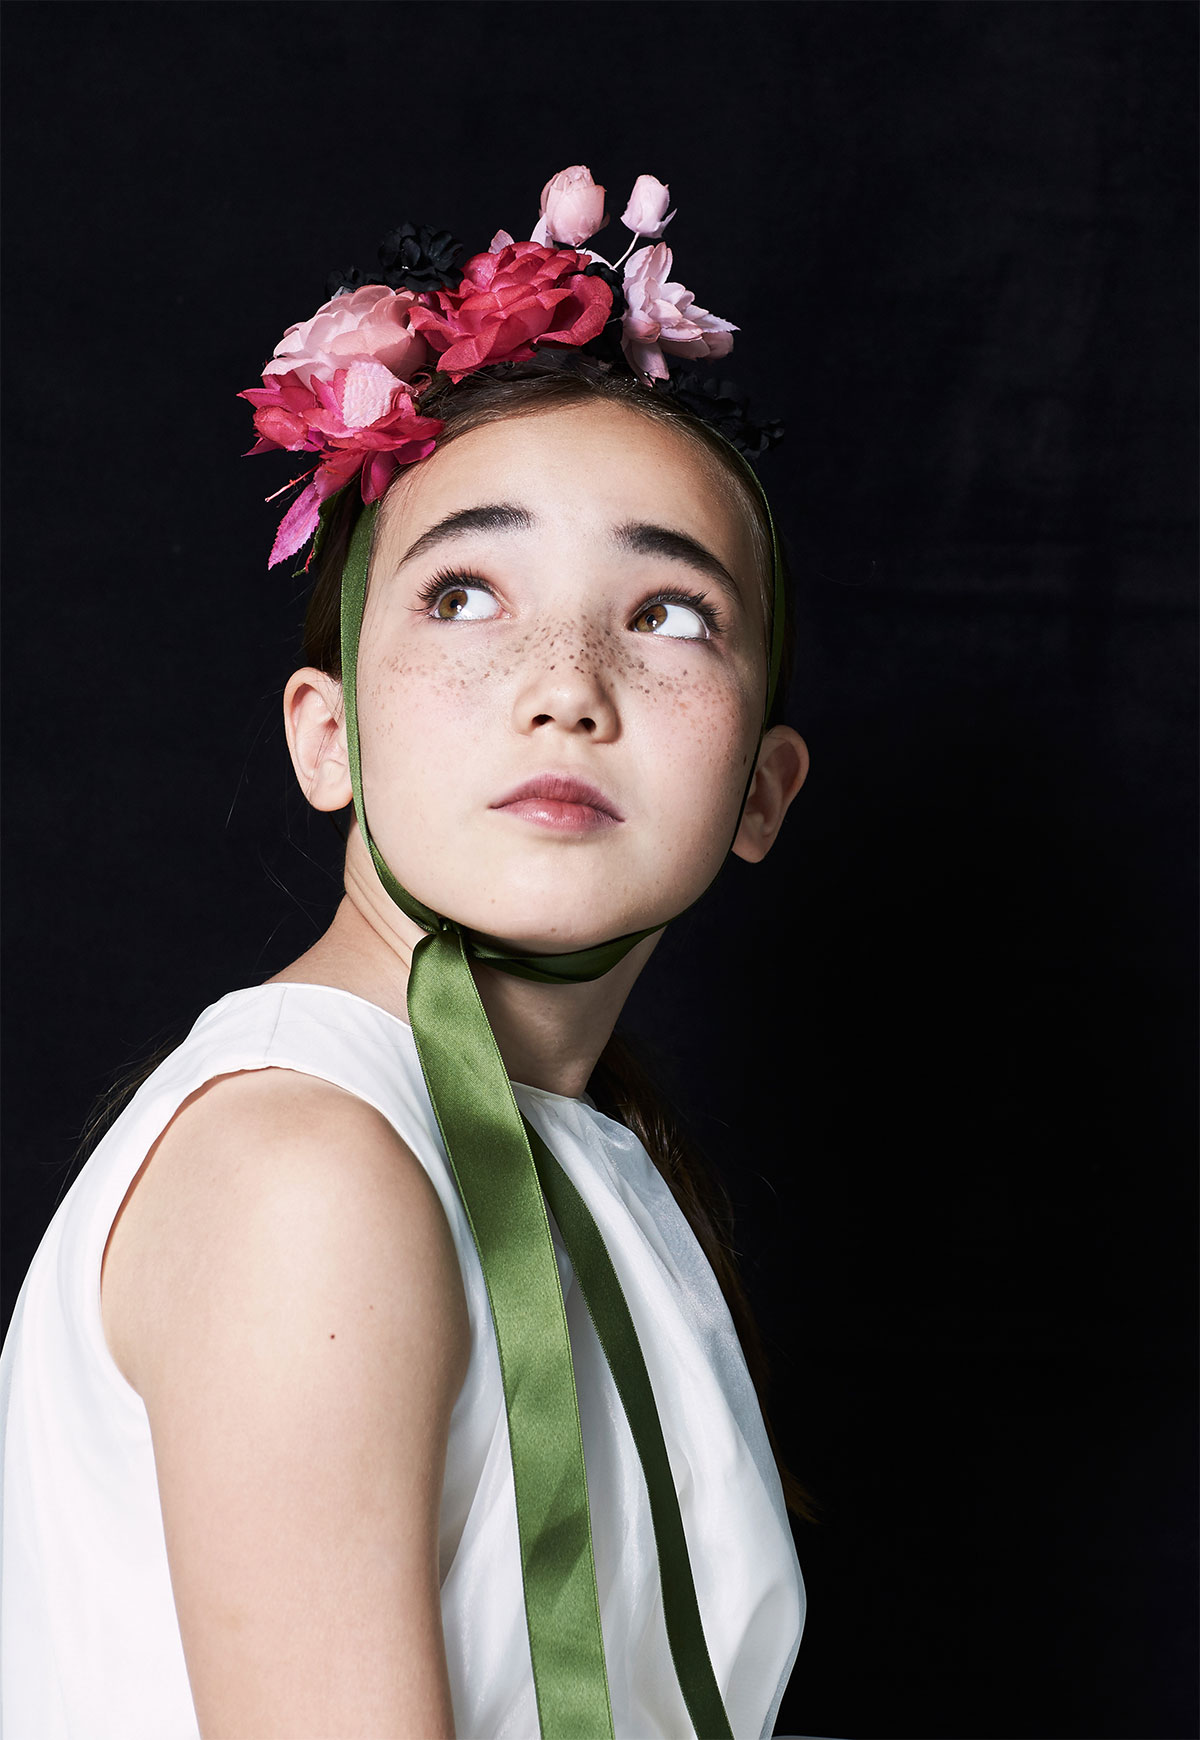 girl with flower hat